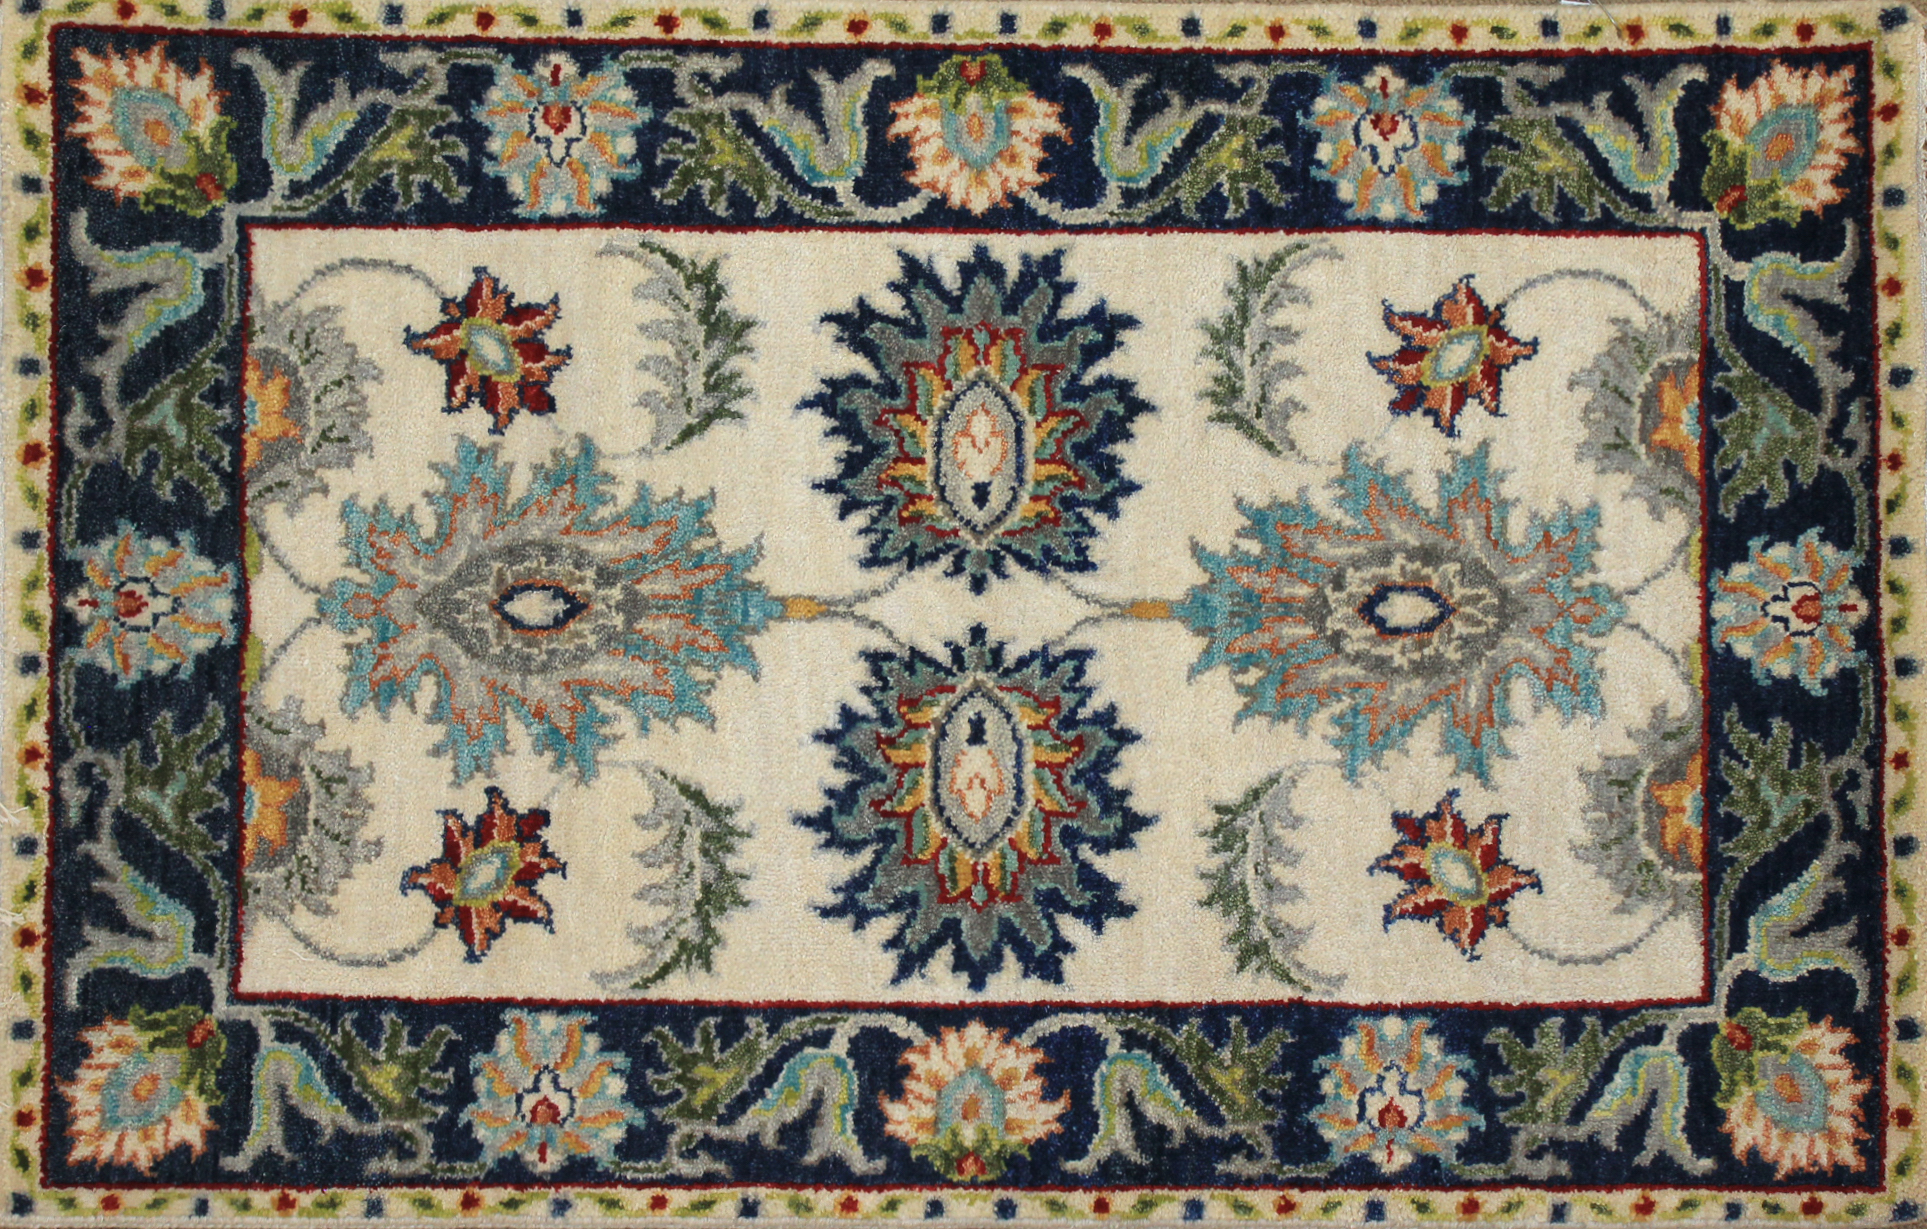 2X3 Traditional Hand Knotted Wool Area Rug - MR025256